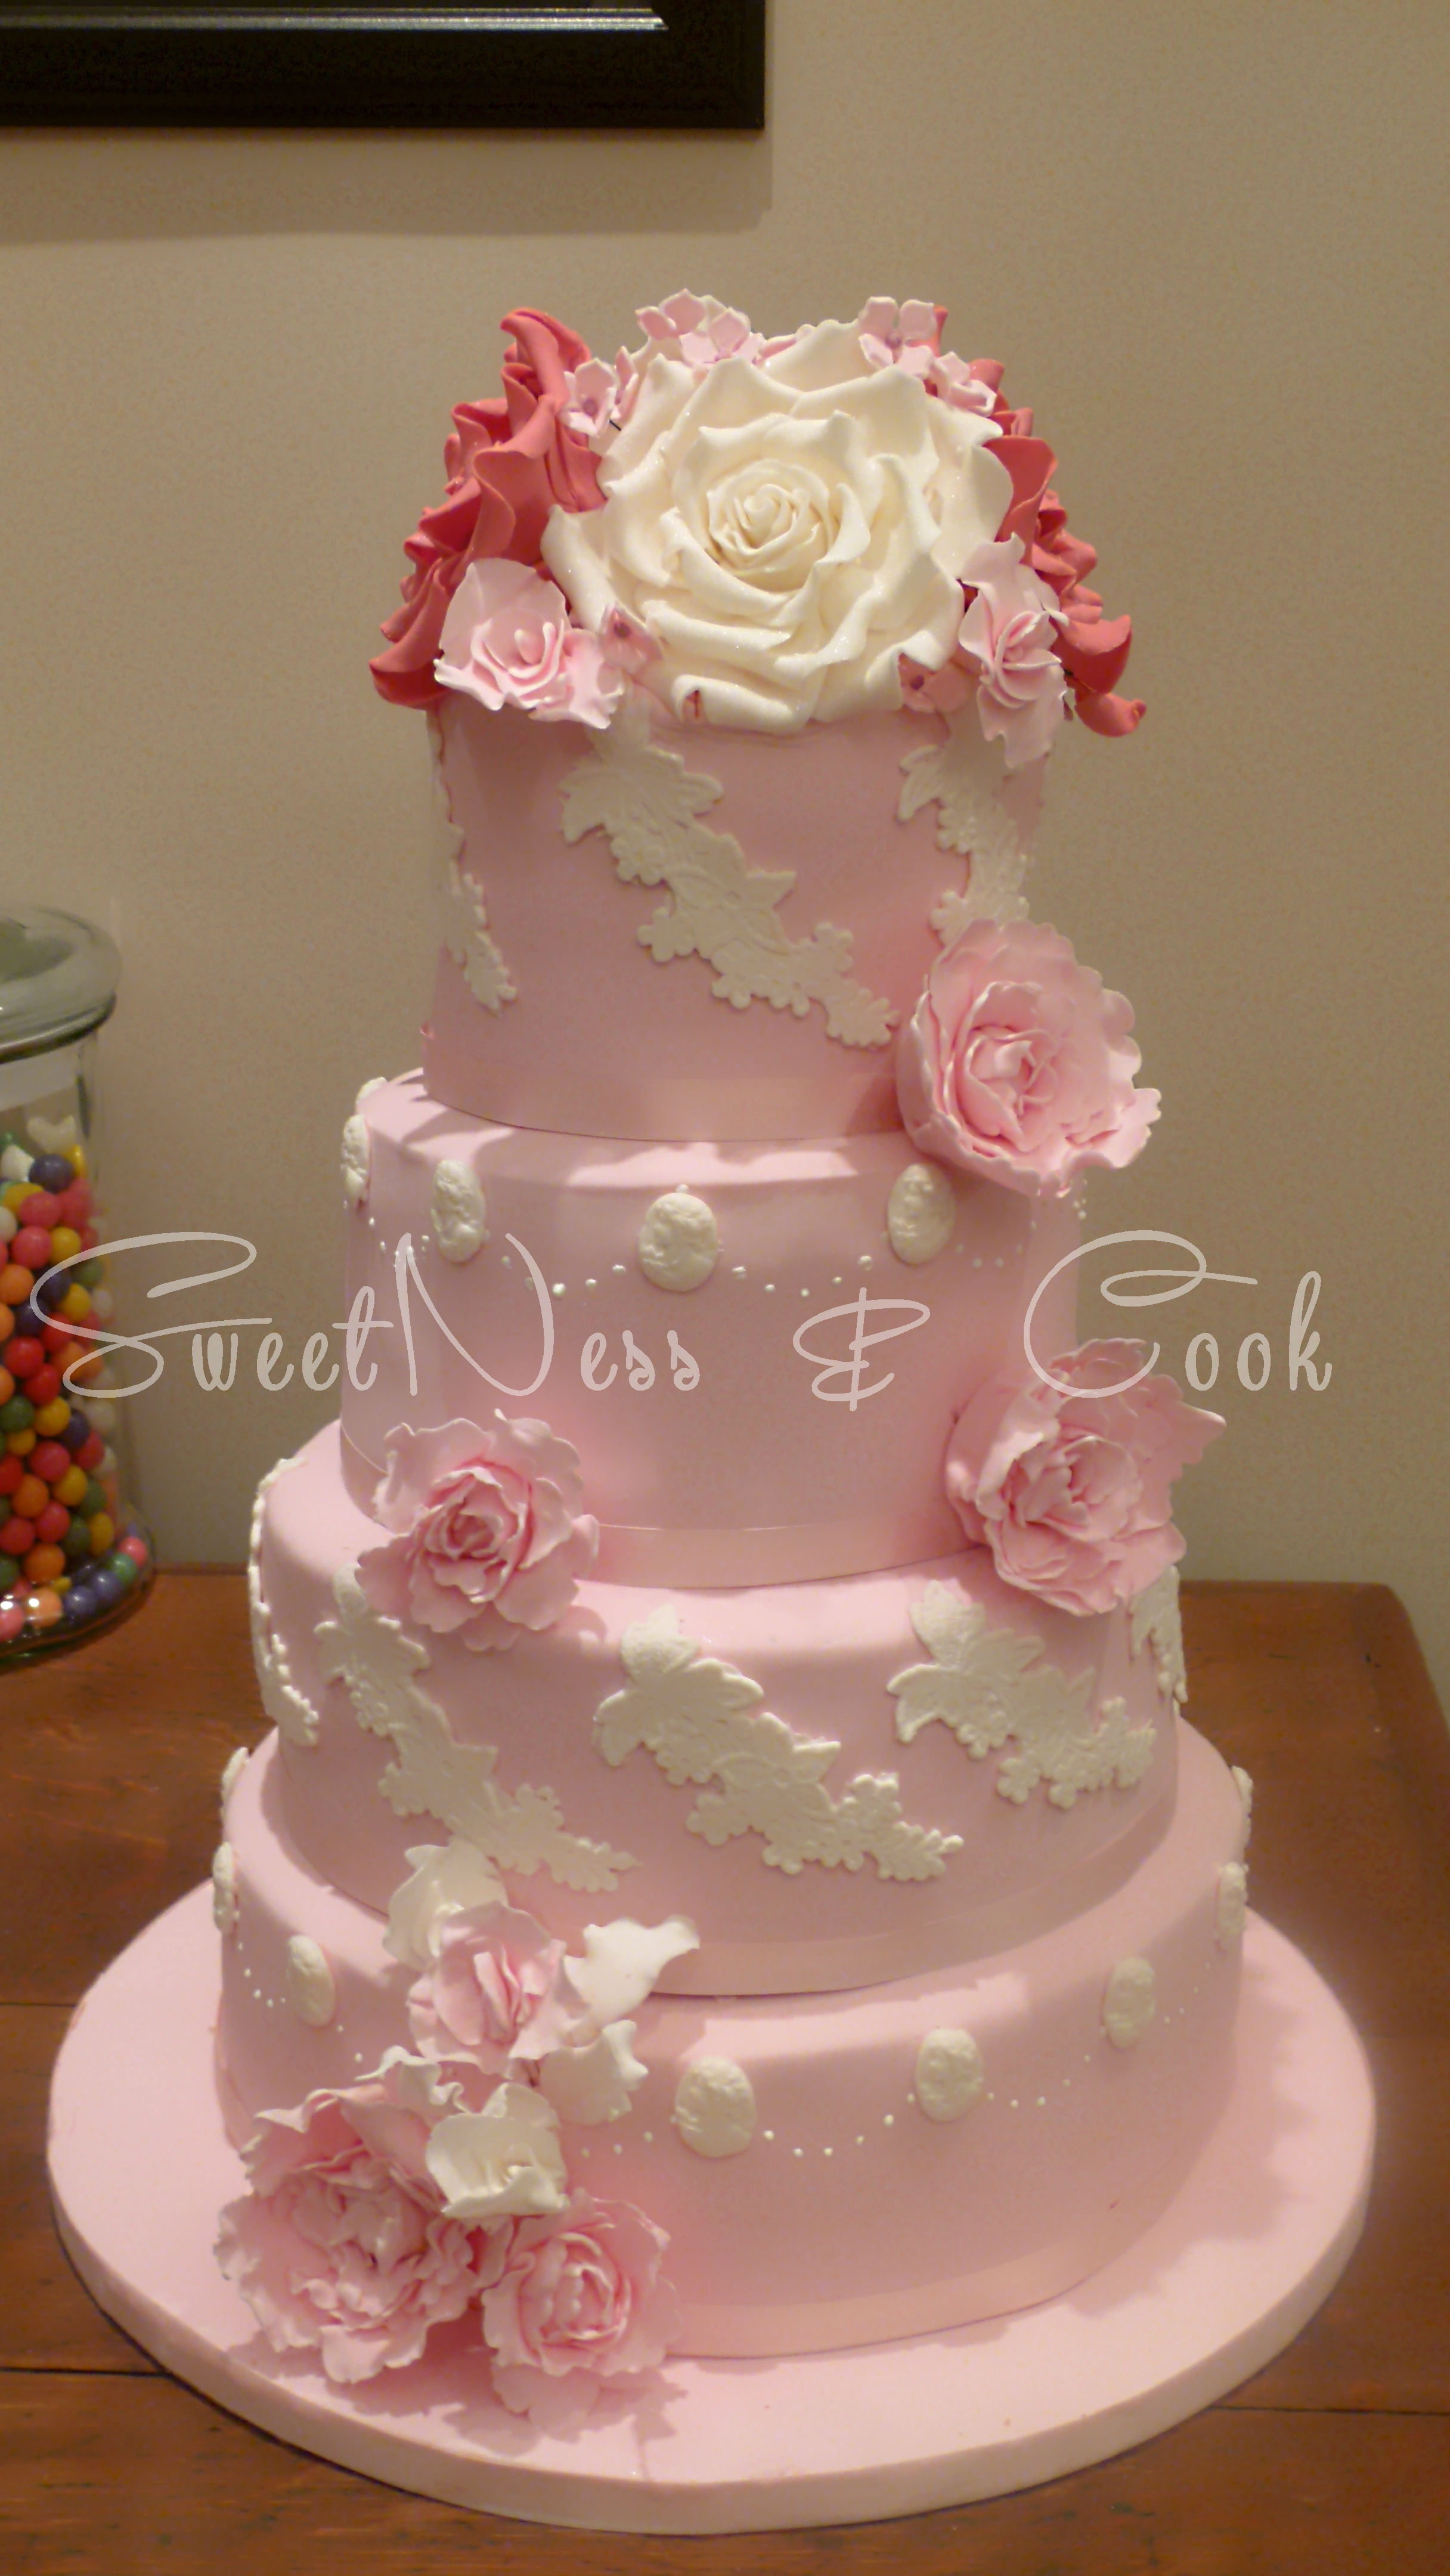 Wedding Cake douce romance